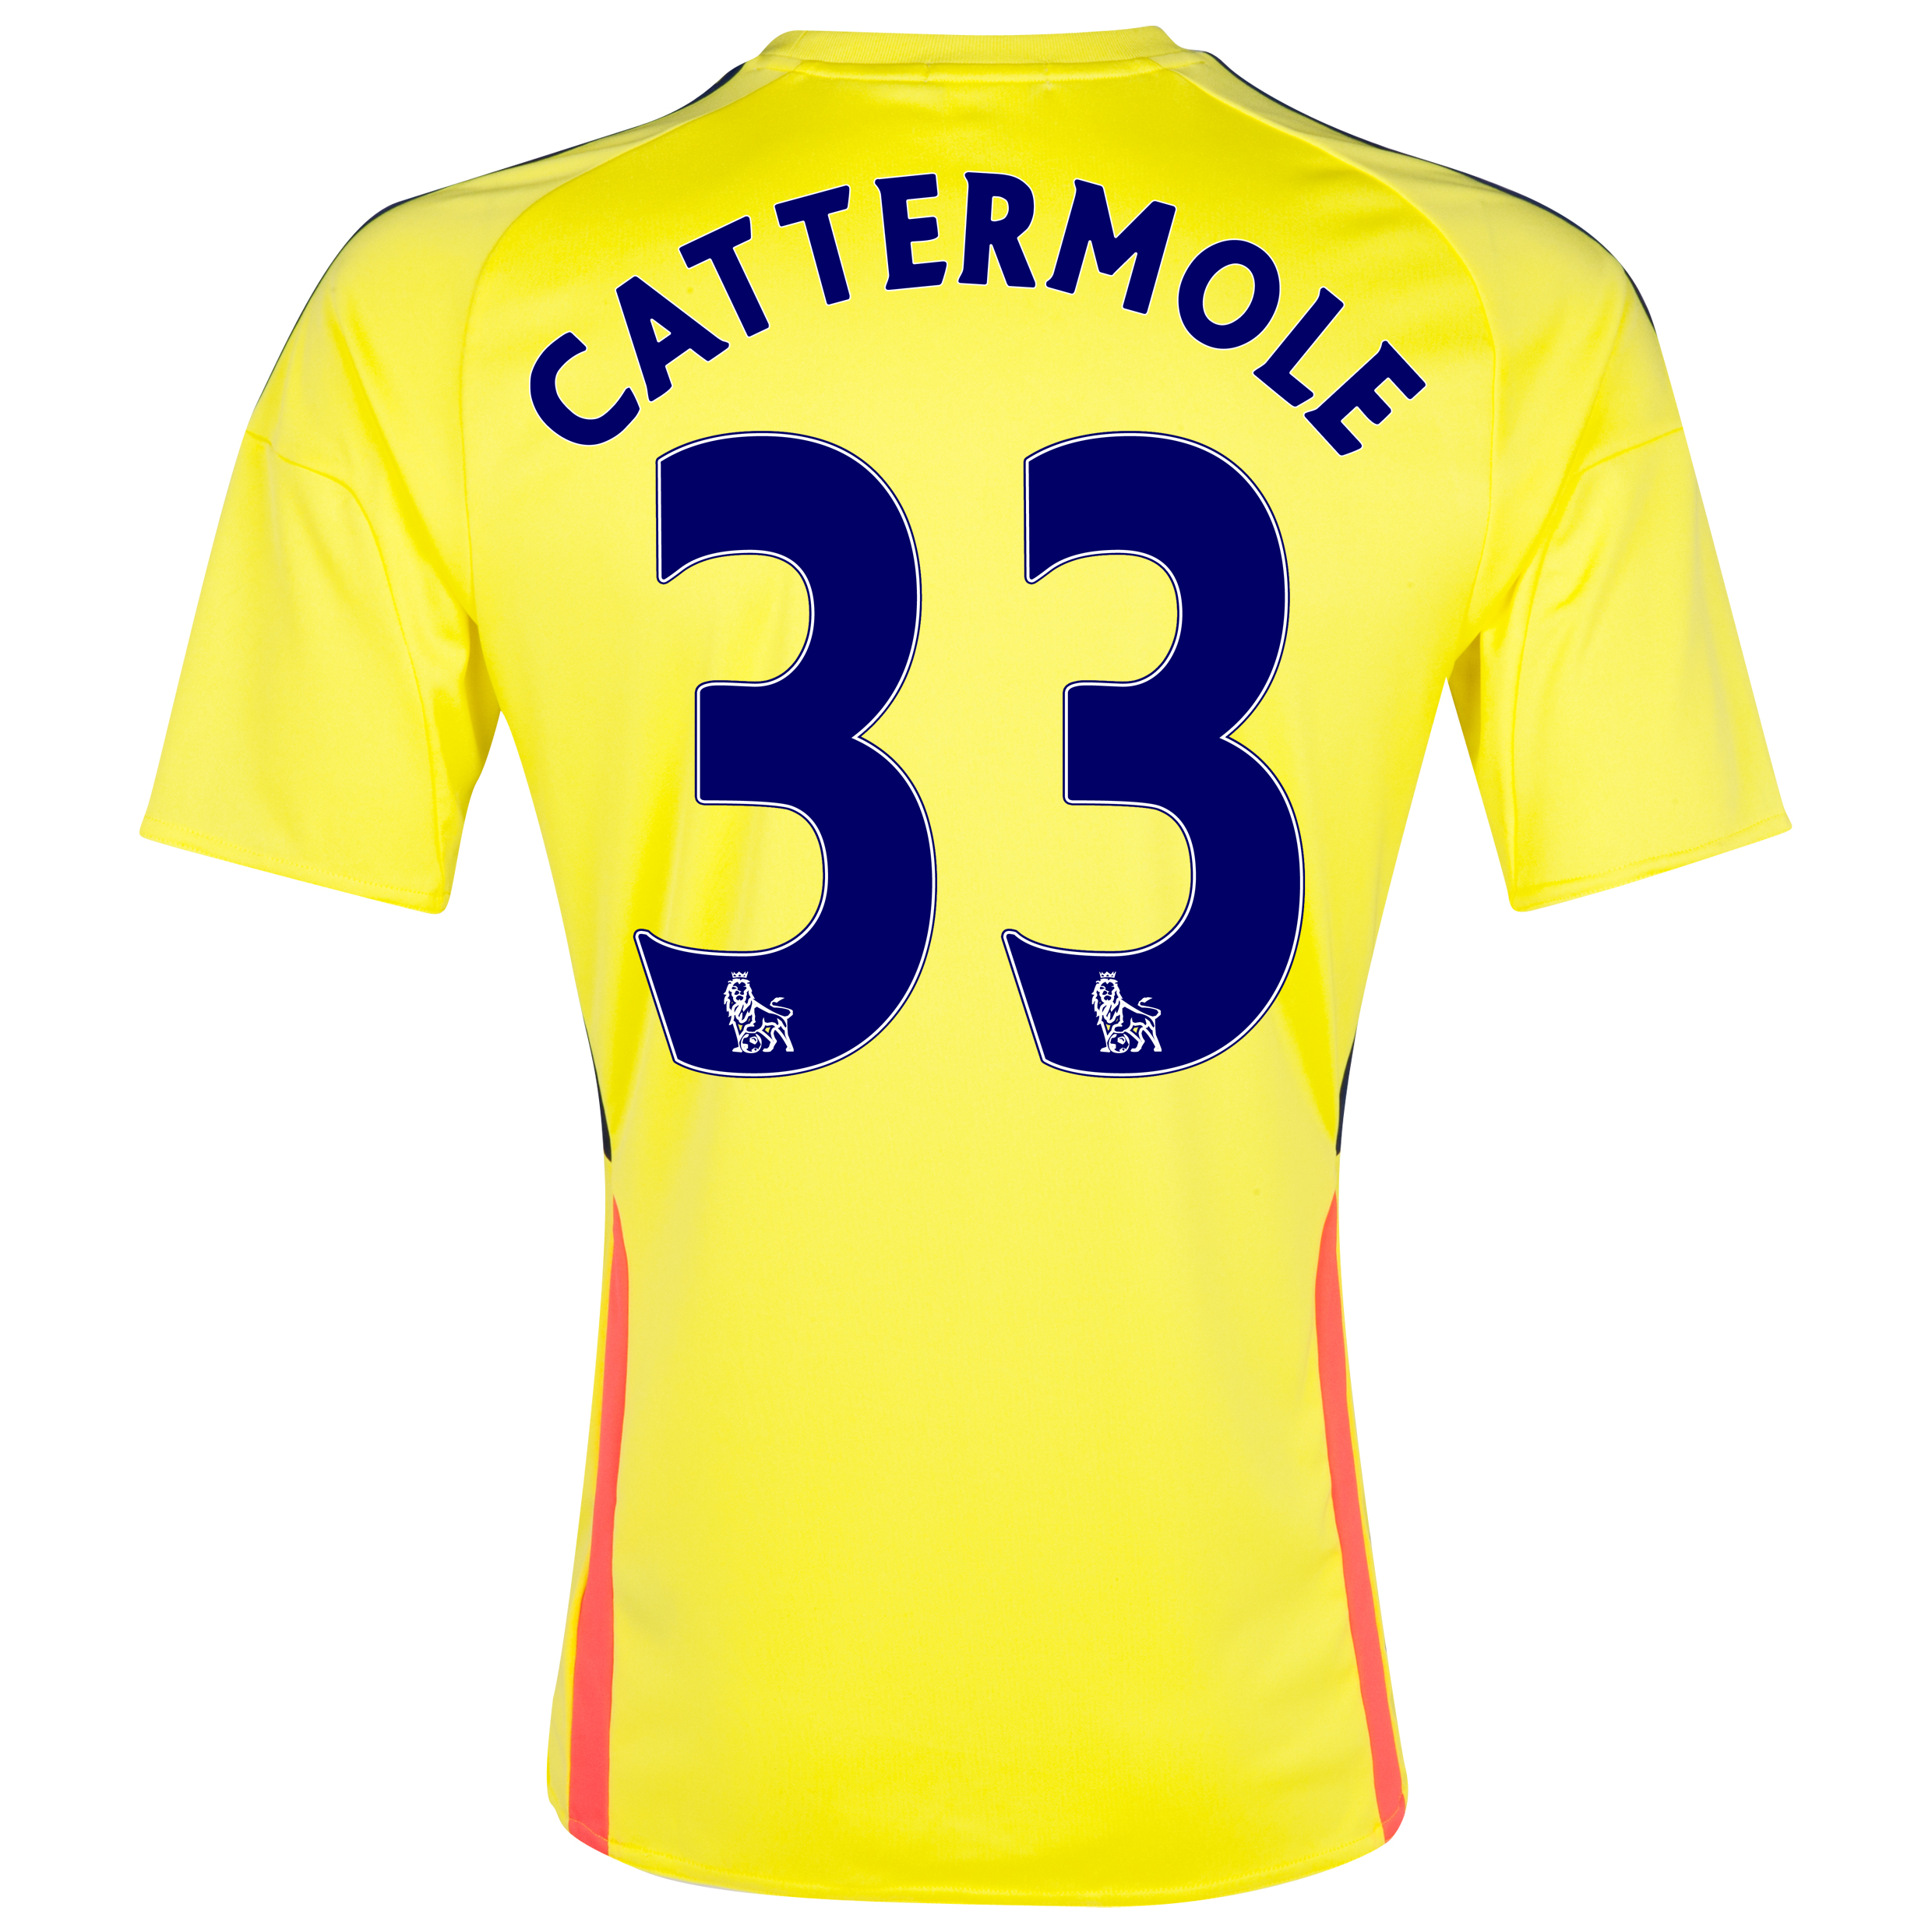 Sunderland Away Shirt 2013/14 - Junior with Cattermole 33 printing